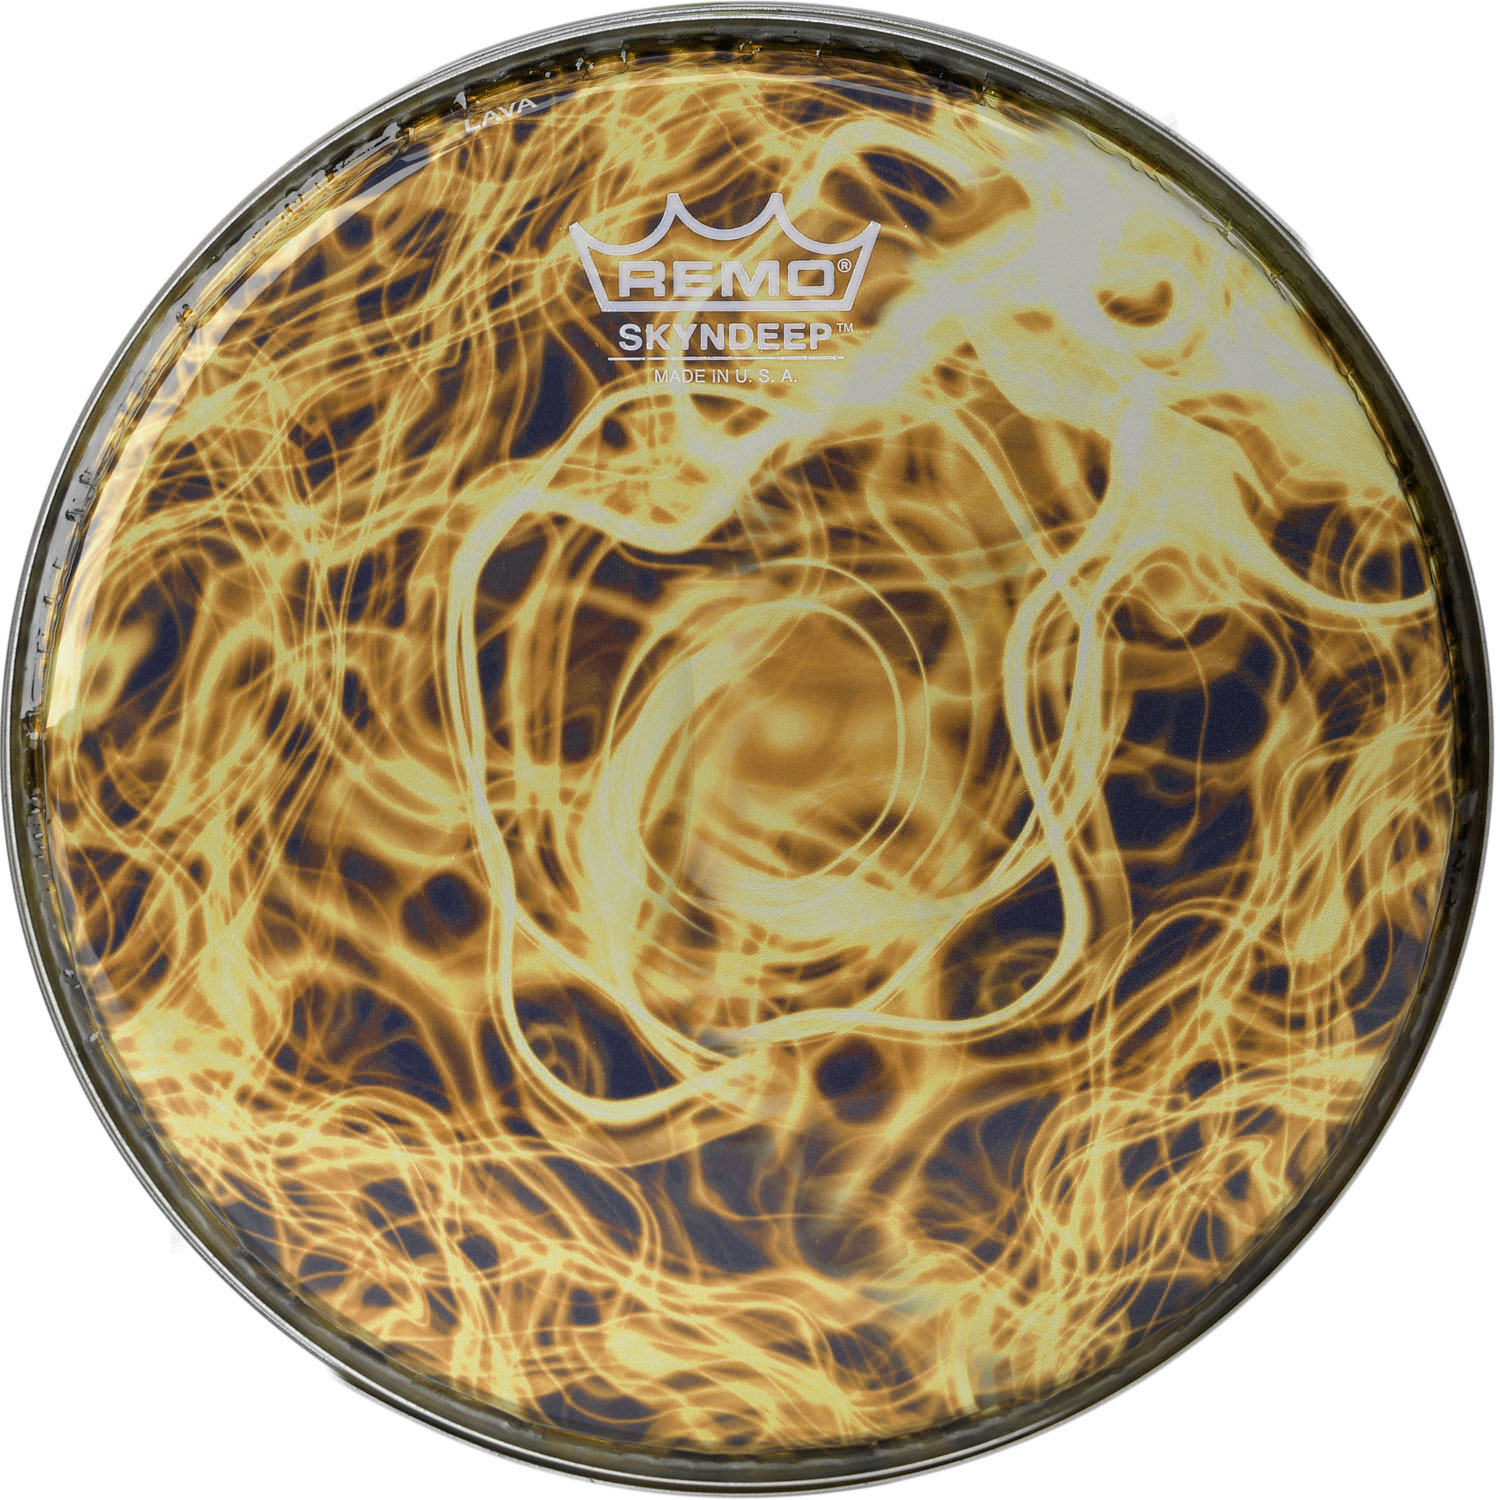 "Remo 8"" R-Series Skyndeep Doumbek Drum Head with Yellow Wave Graphic"